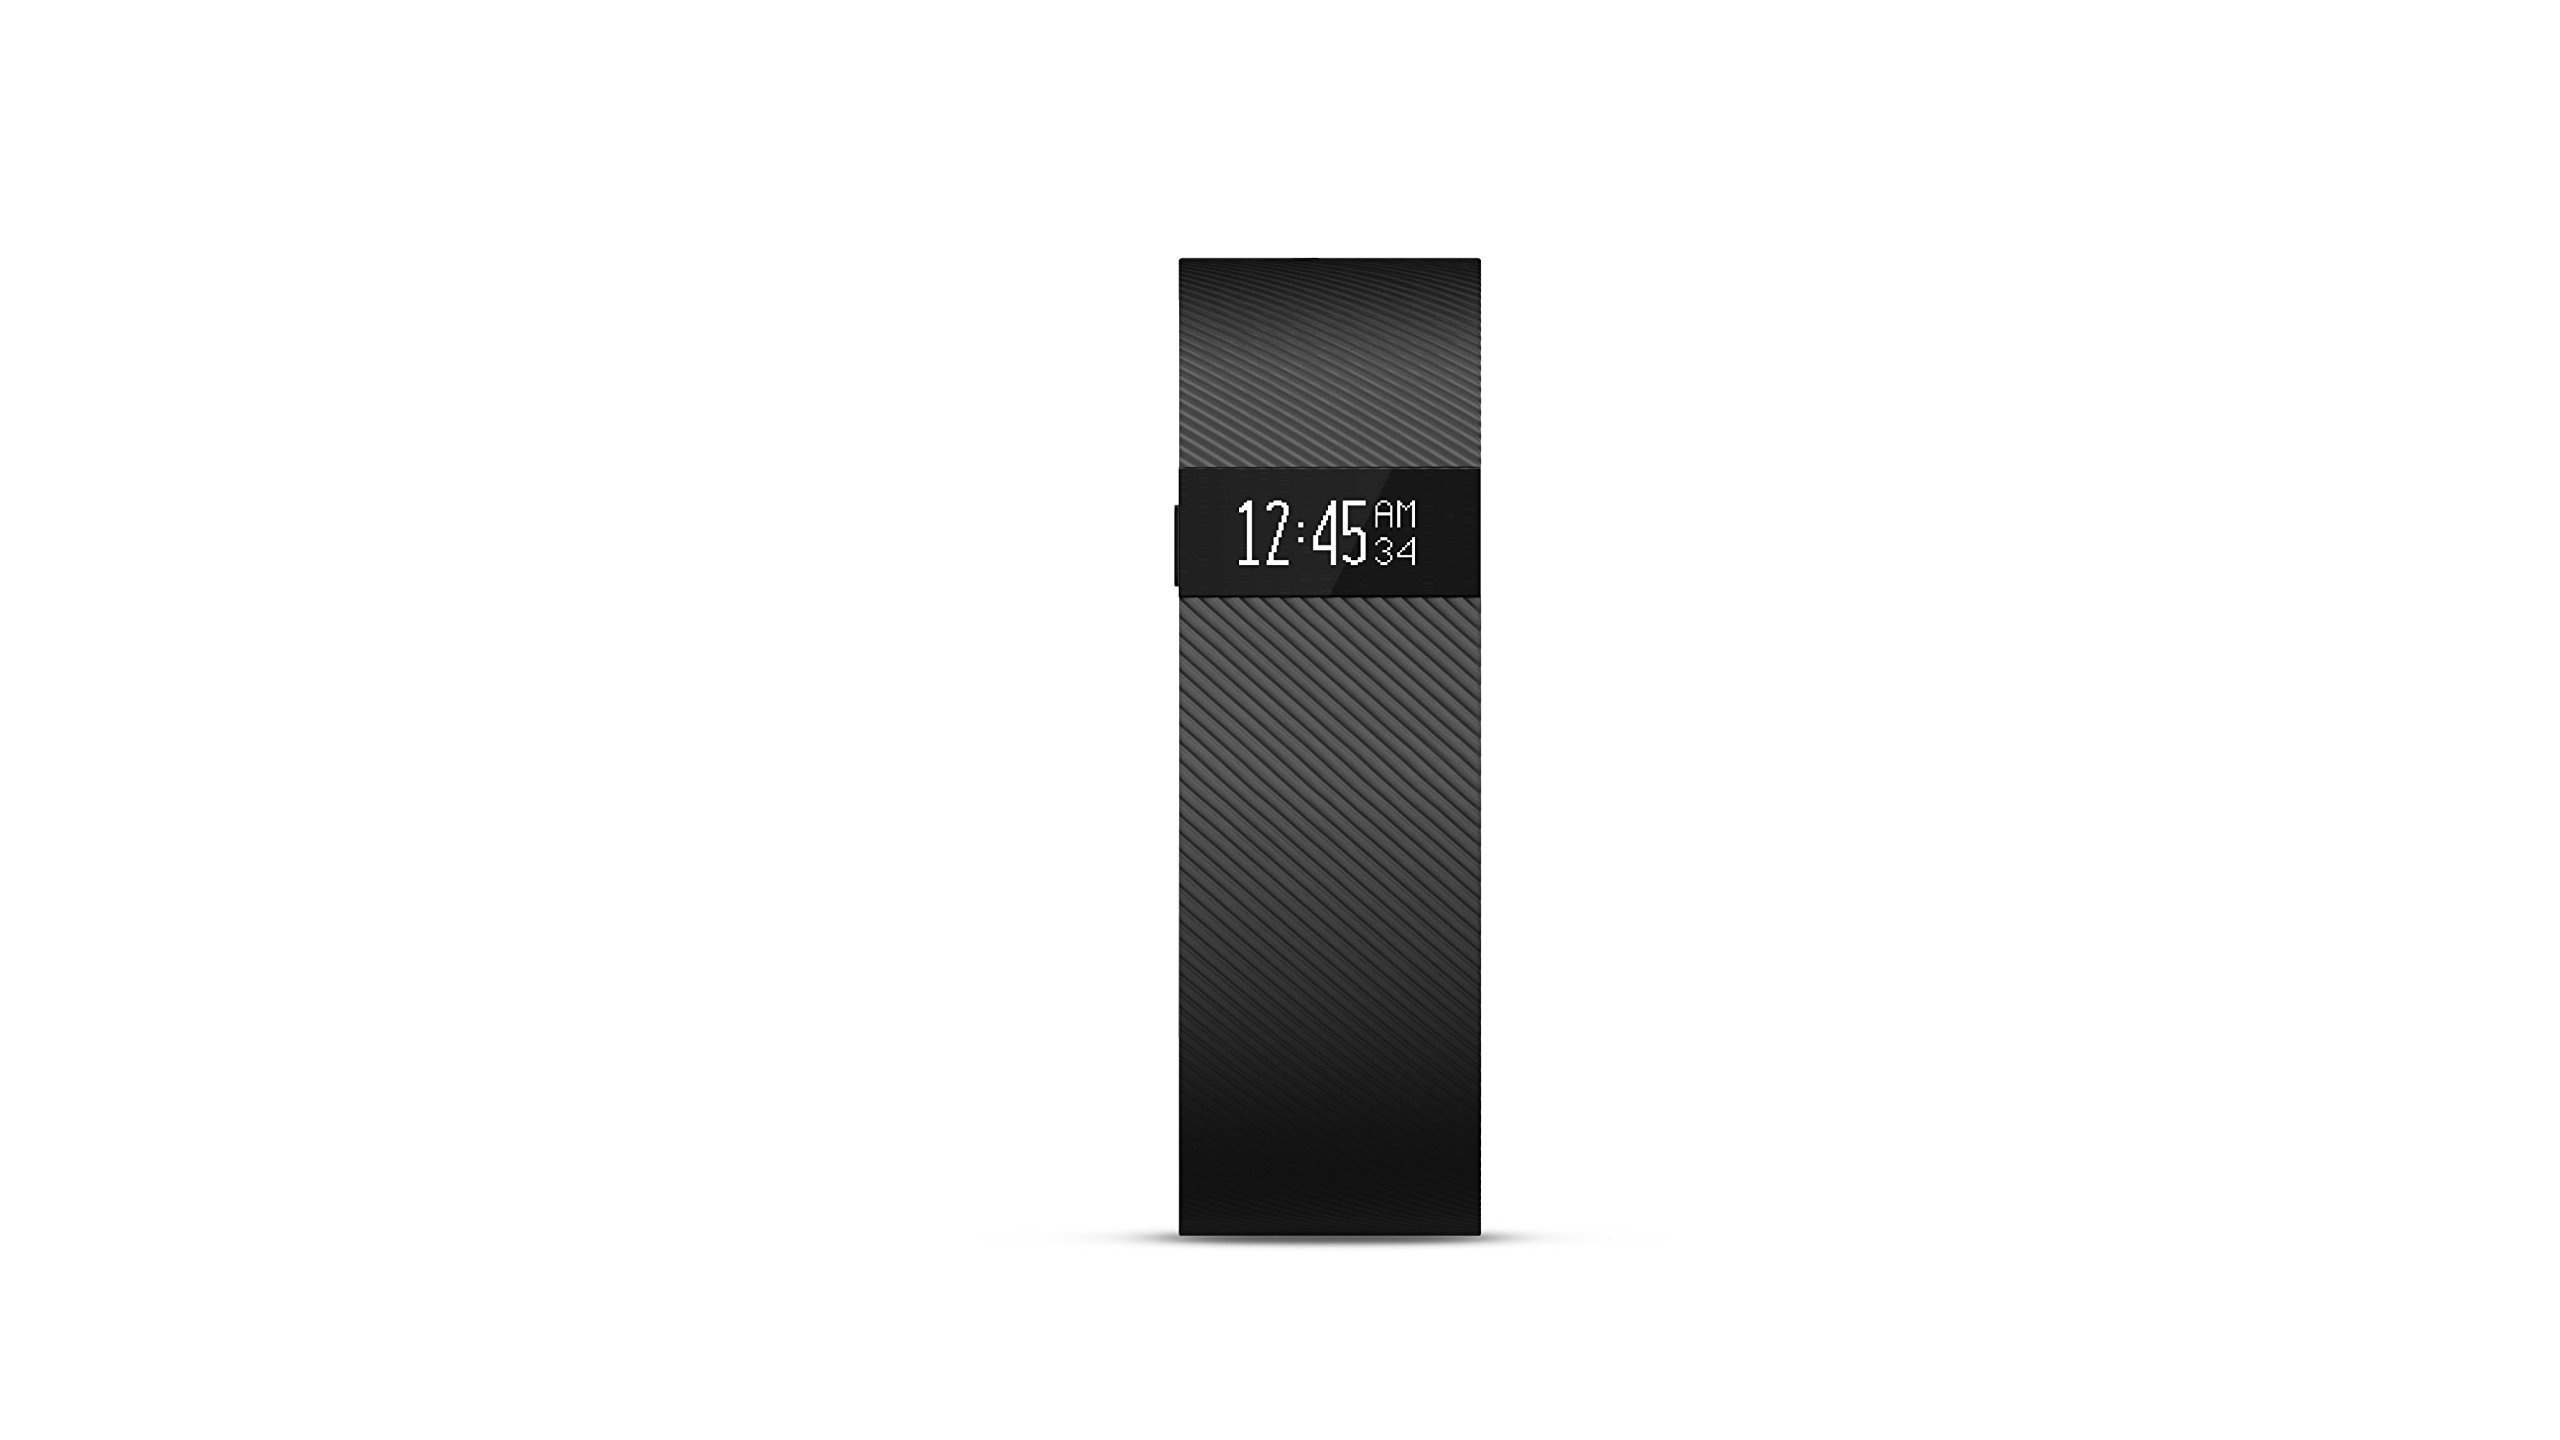 Fitbit Charge Wireless Activity Wristband, Black, Small by Fitbit (Image #5)